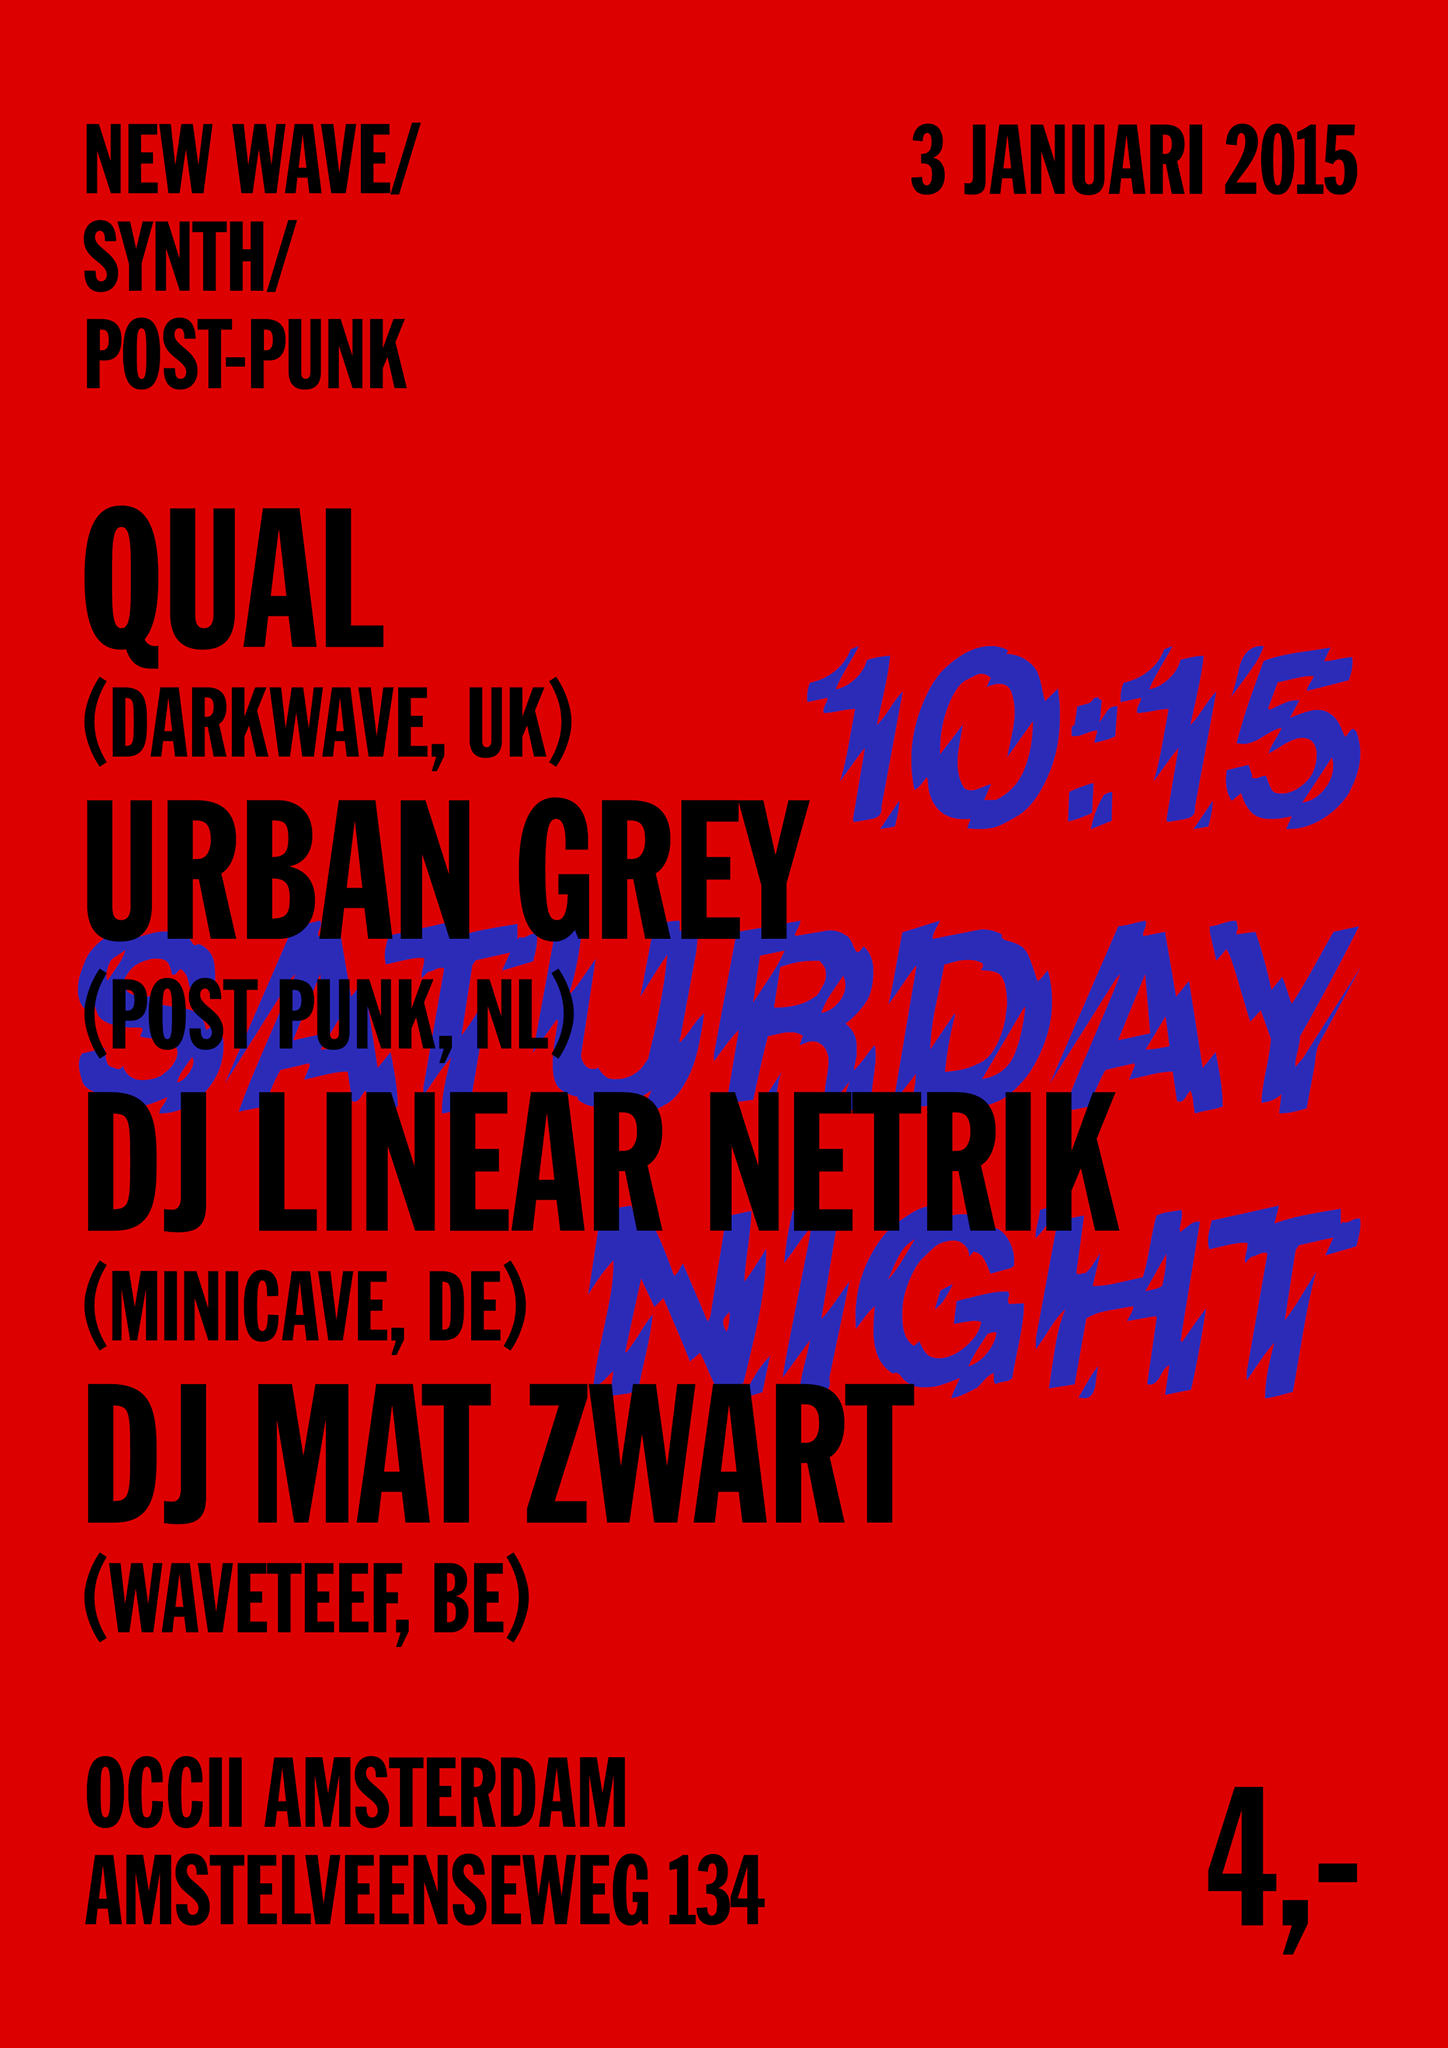 10:15 Saturday Night Presents: QUAL (UK) + URBAN GREY + DJ Linear Netrik (Minicave, DE) + DJ Mat Zwart (Waveteef, BE)